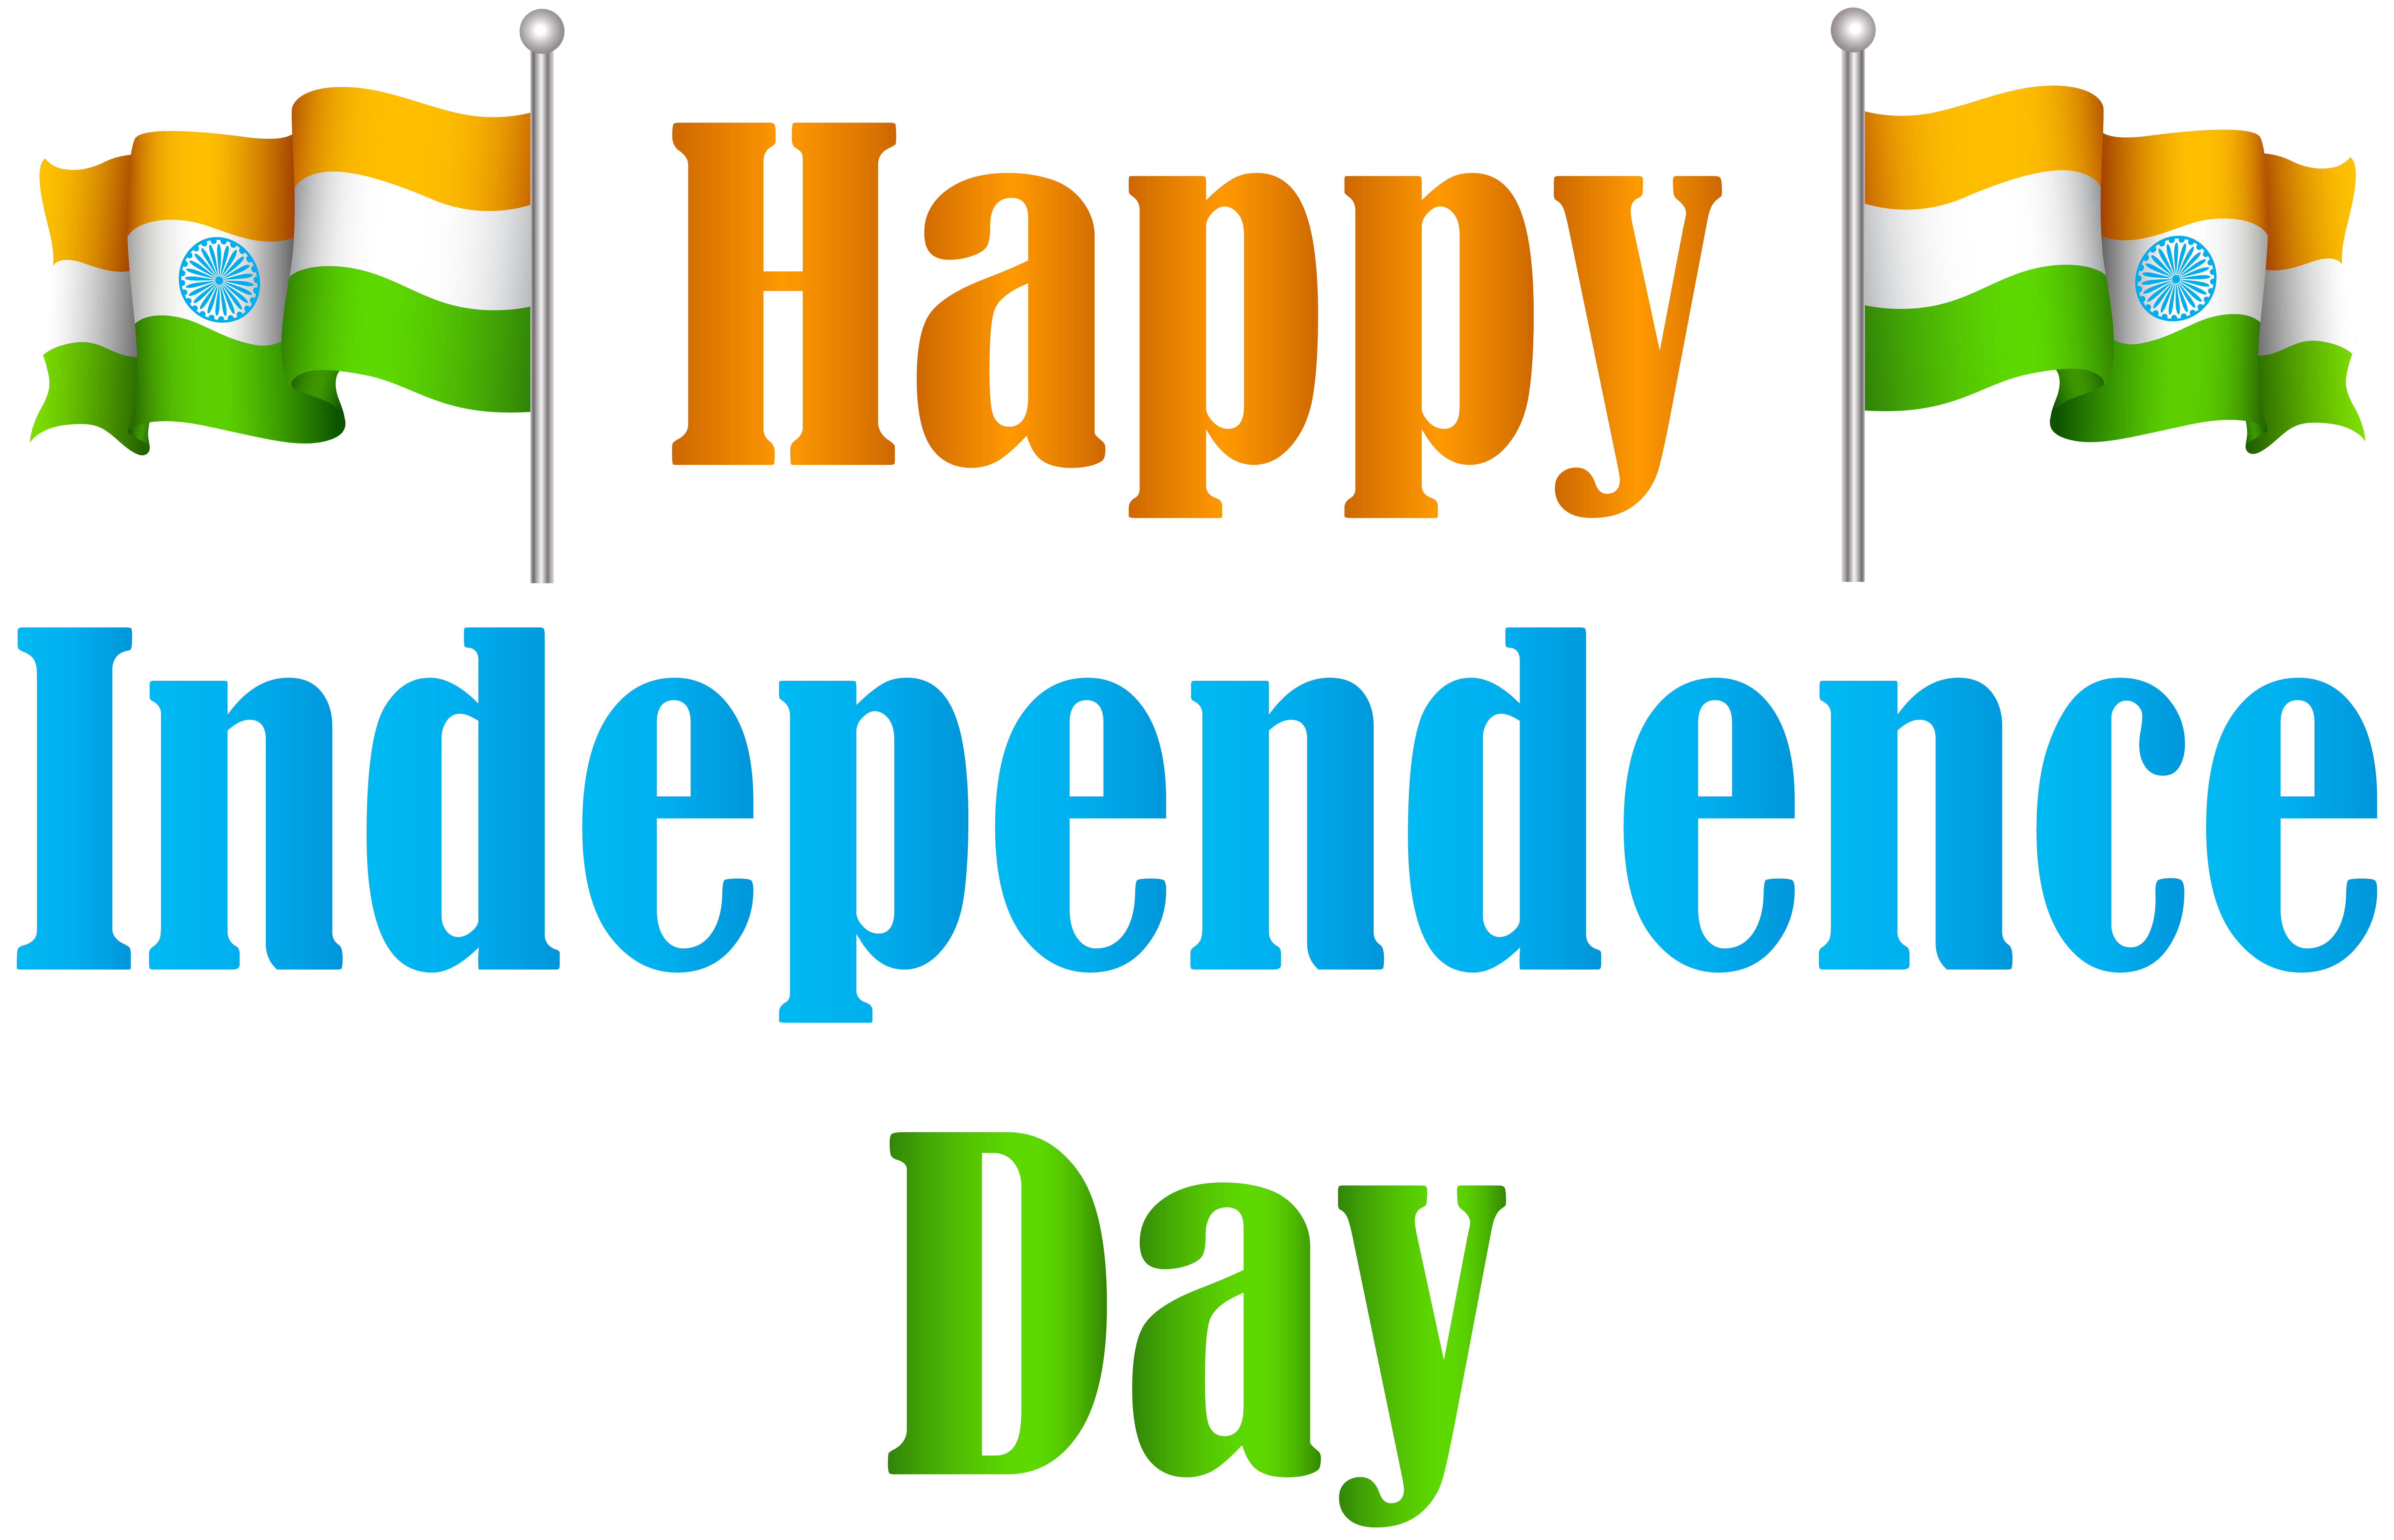 India clipart school. Happy independence day transparent